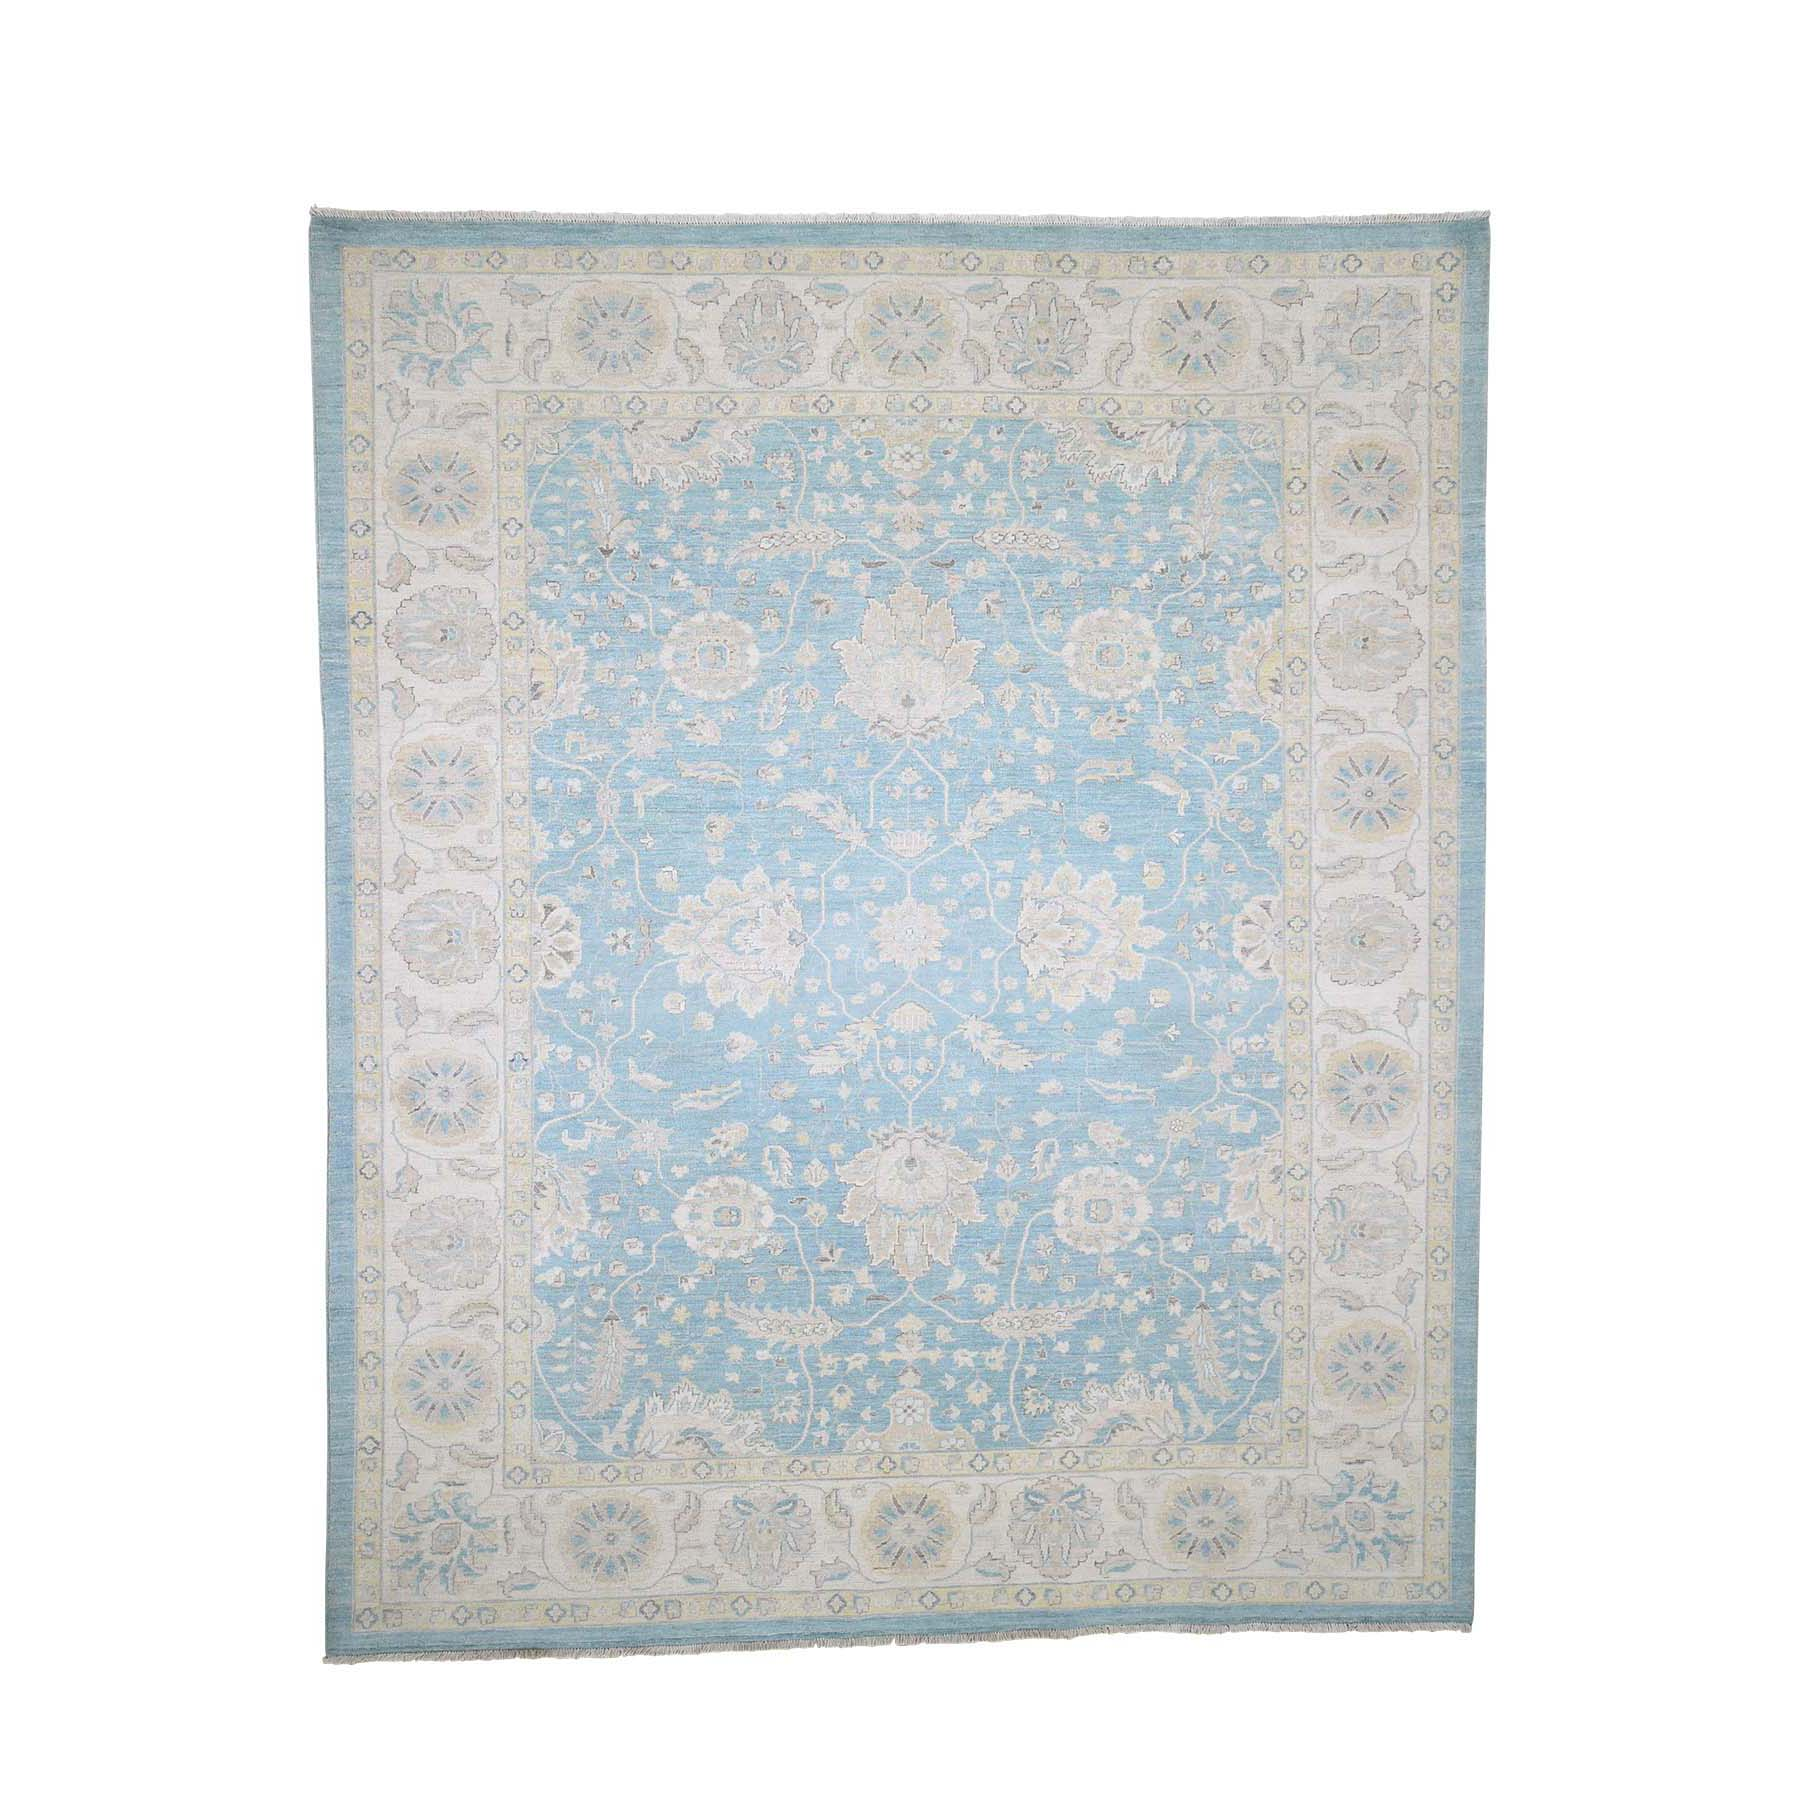 "8'X9'9"" Peshawar With Oushak Design Sky Blue Hand-Knotted Oriental Rug moad08e9"